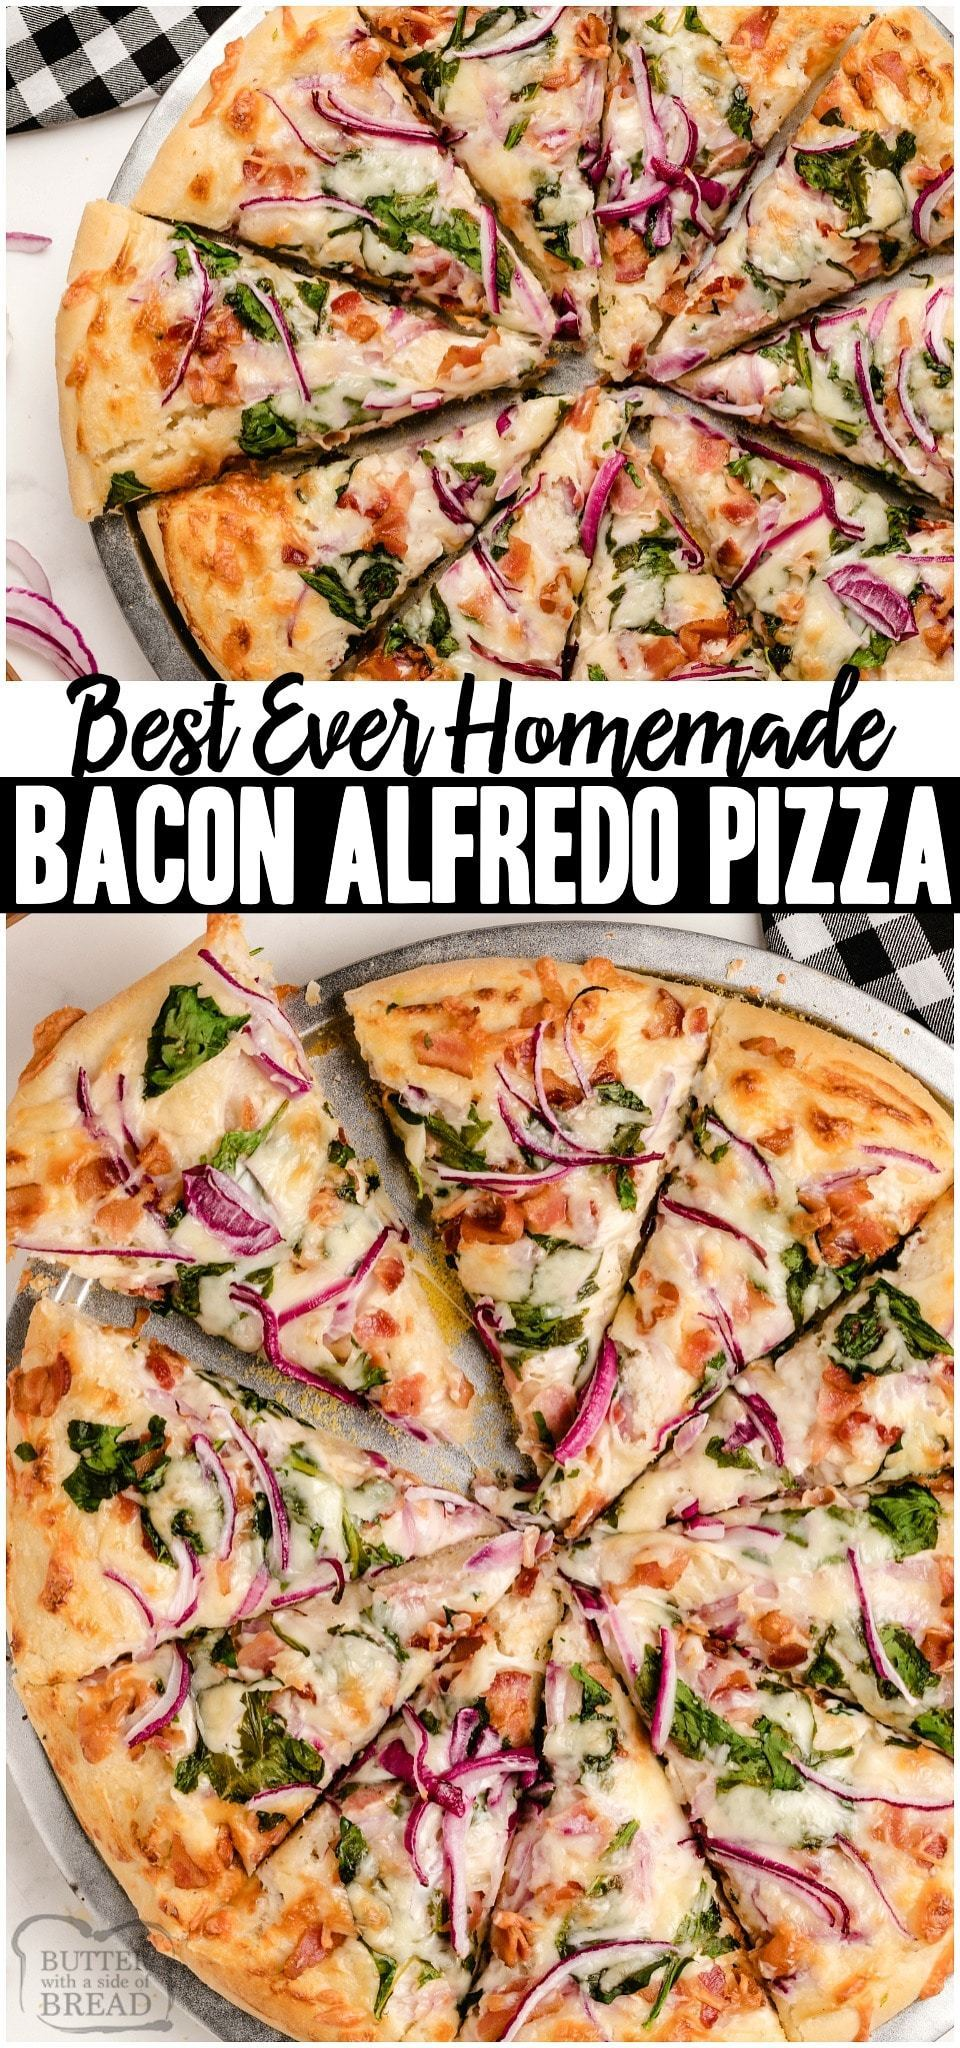 Bacon Alfredo Pizza baked fresh with cheesy Alfredo sauce topped with crispy bacon, cheese and some veggies! Easy recipe yields two Homemade Pizzas perfect for a fun weeknight dinner!